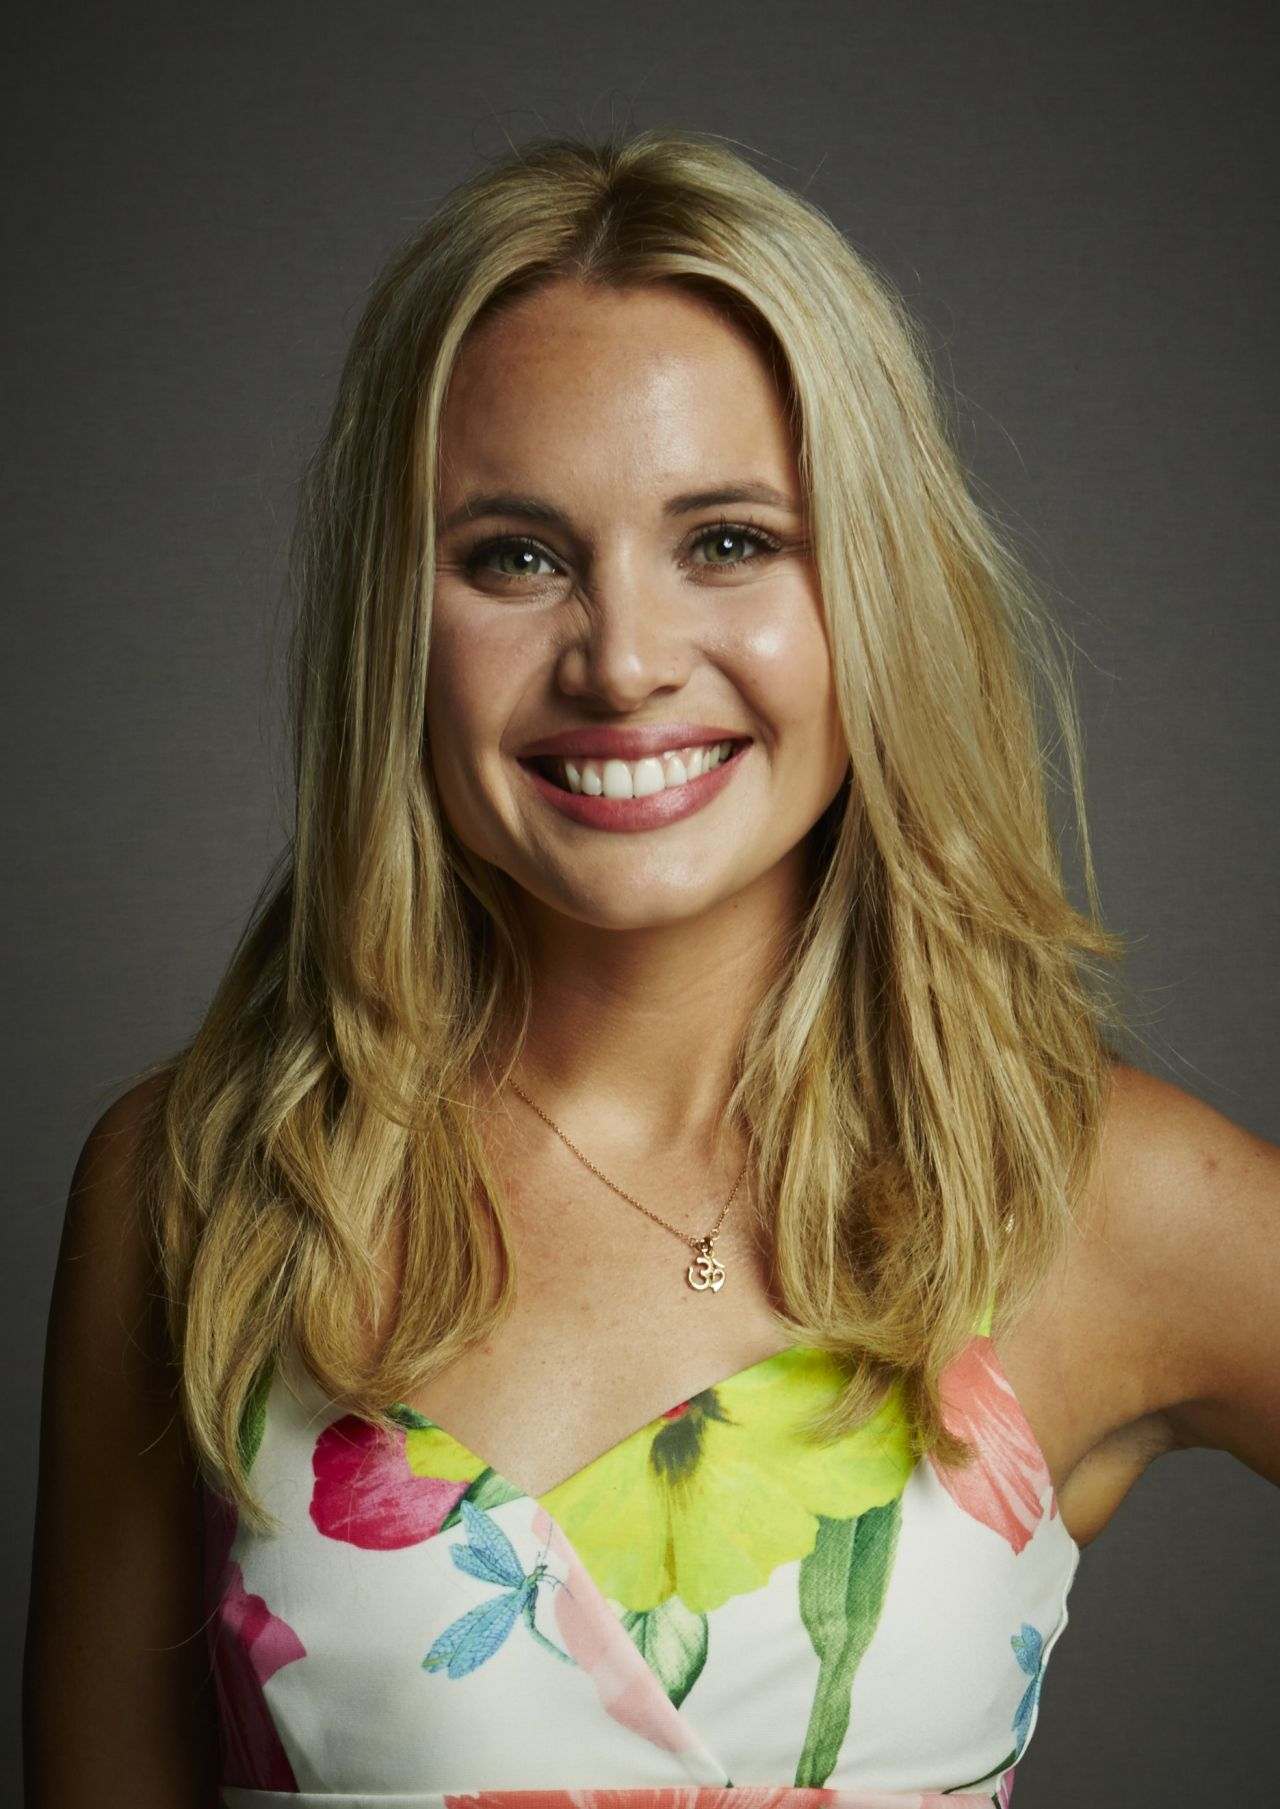 Leah Pipes – 'The Originals' Portraits at Comic-Con 2014